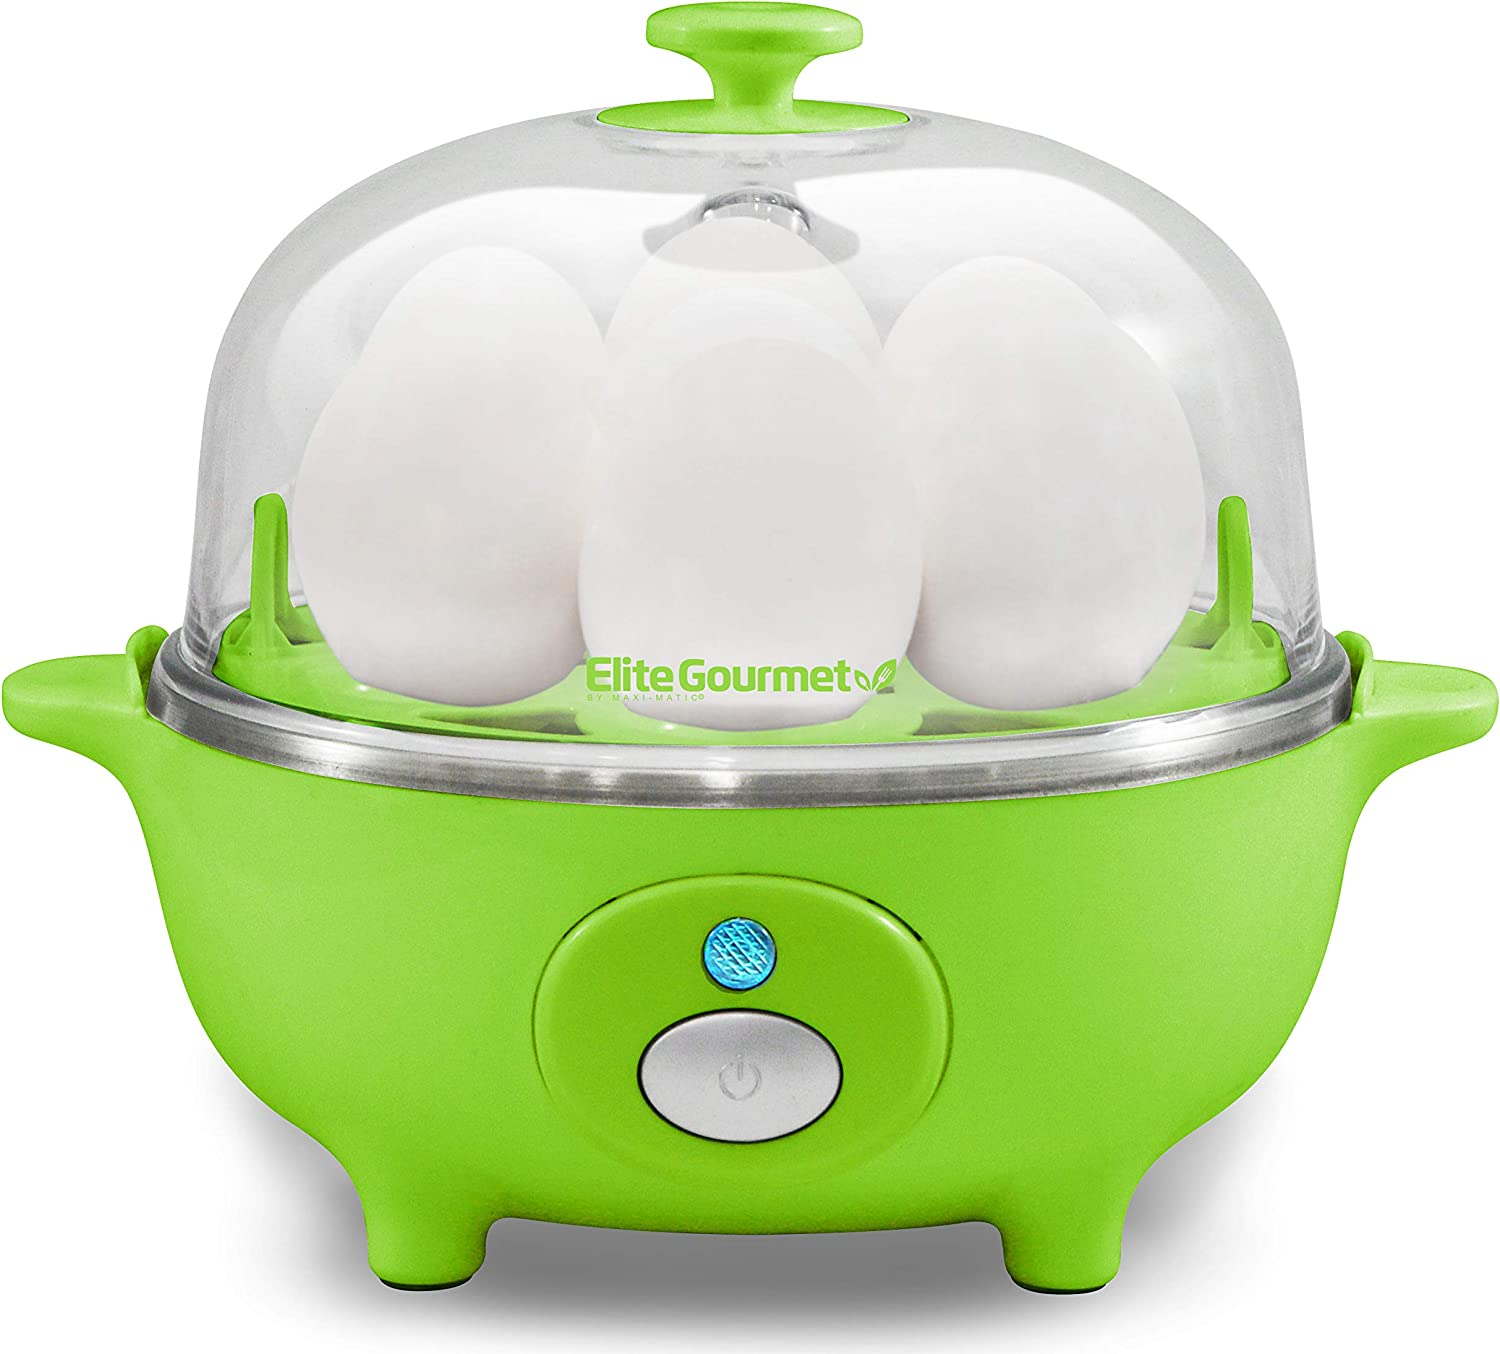 Elite Cuisine EGC-007G Easy Electric Egg Poacher, Omelet & Soft, Medium, Hard-Boiled Egg Cooker with Auto-Shut off and Buzzer, 7 Egg Capacity, Green